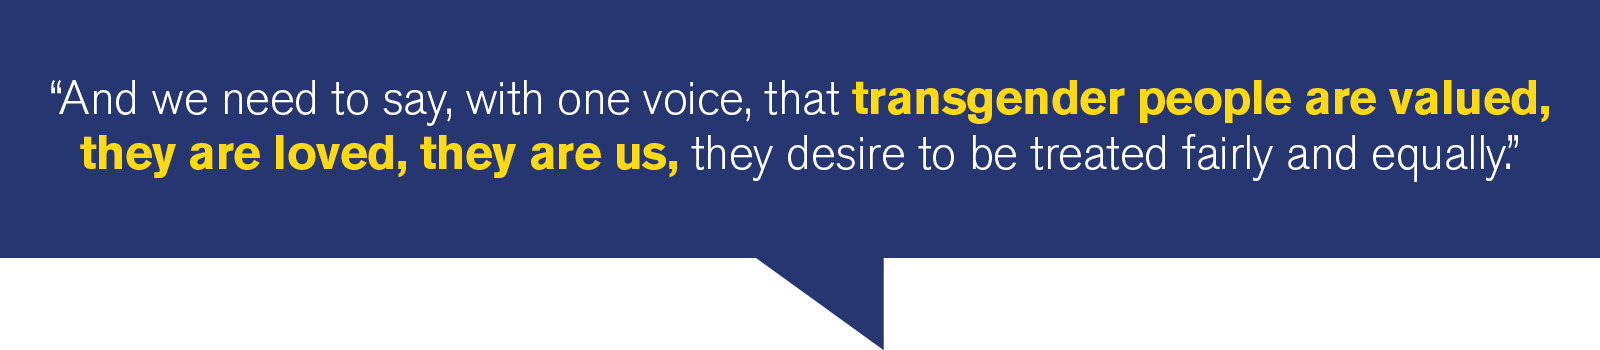 Hillary Clinton quote on transgender issues